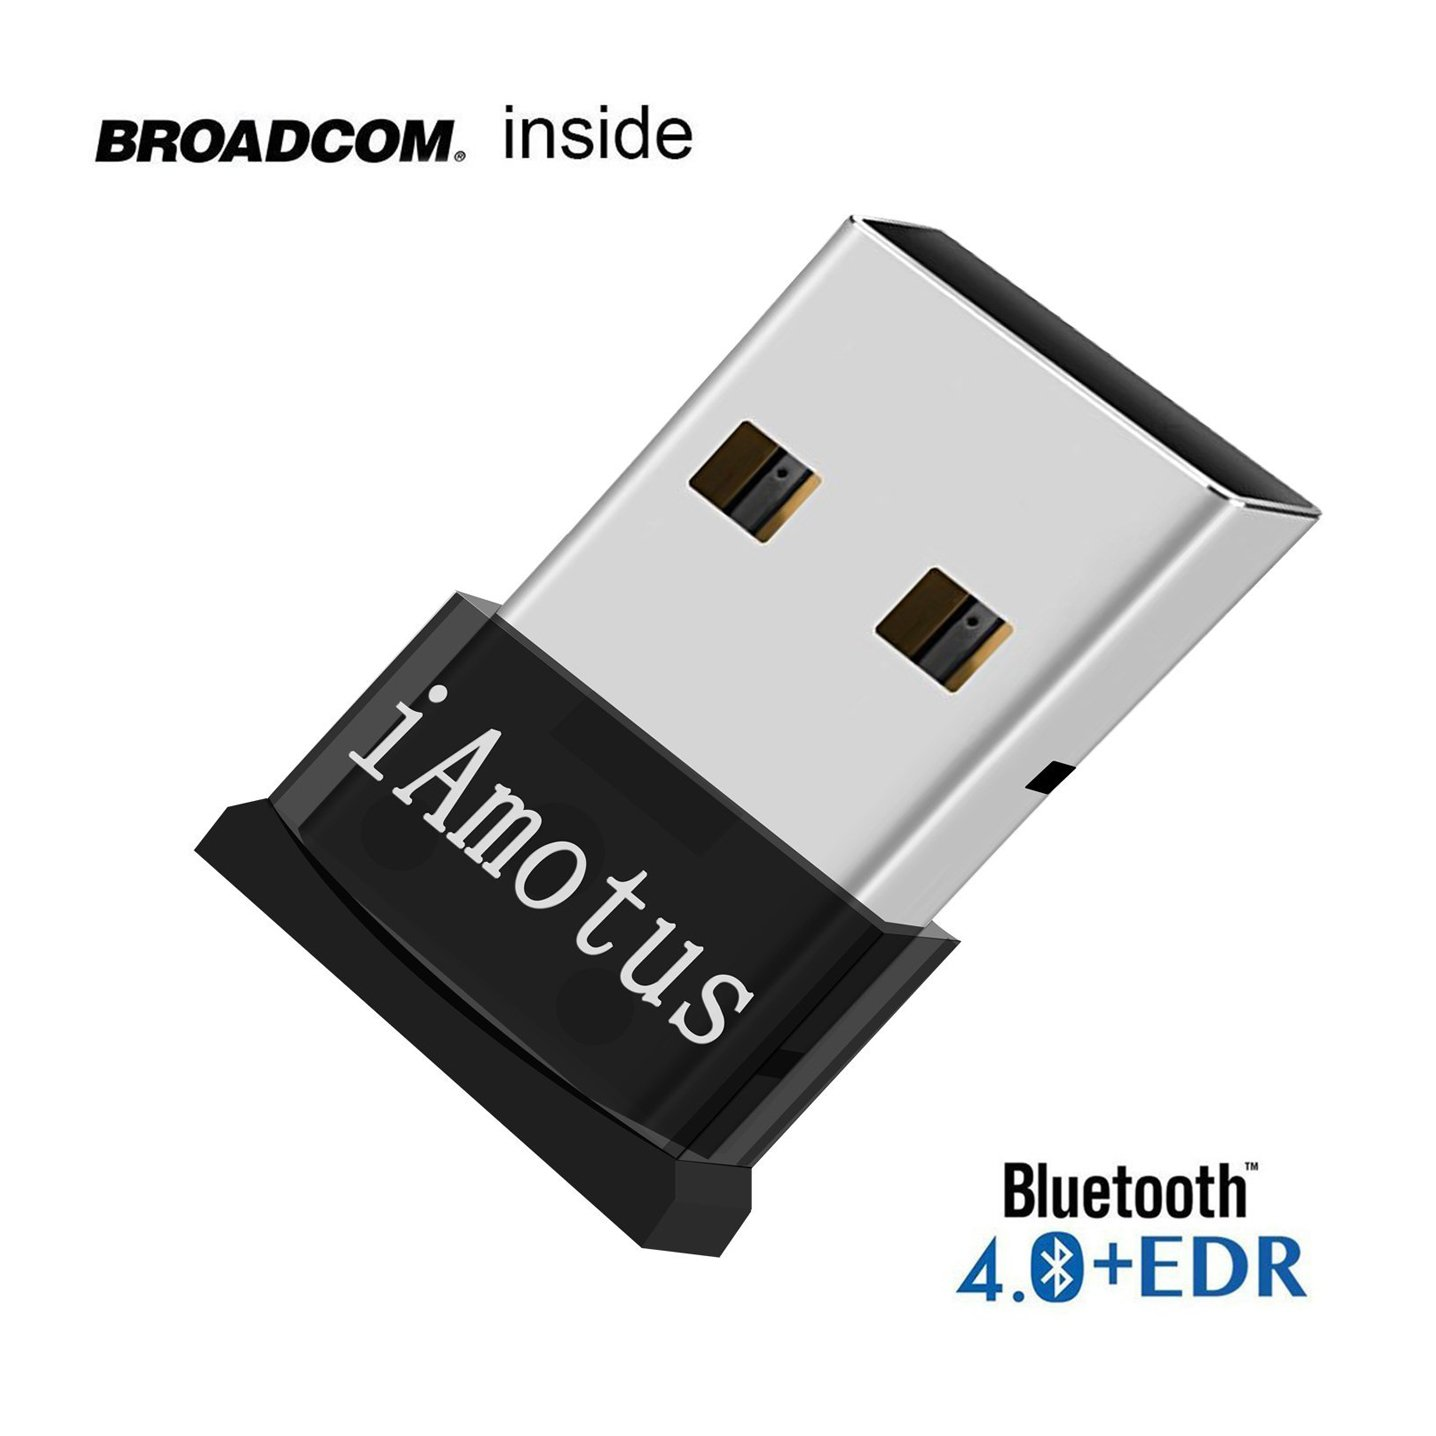 Bluetooth 4.0 USB Dongle Adapter for Windows 10 8 7 PC Mac Laptop Wireless Mouse